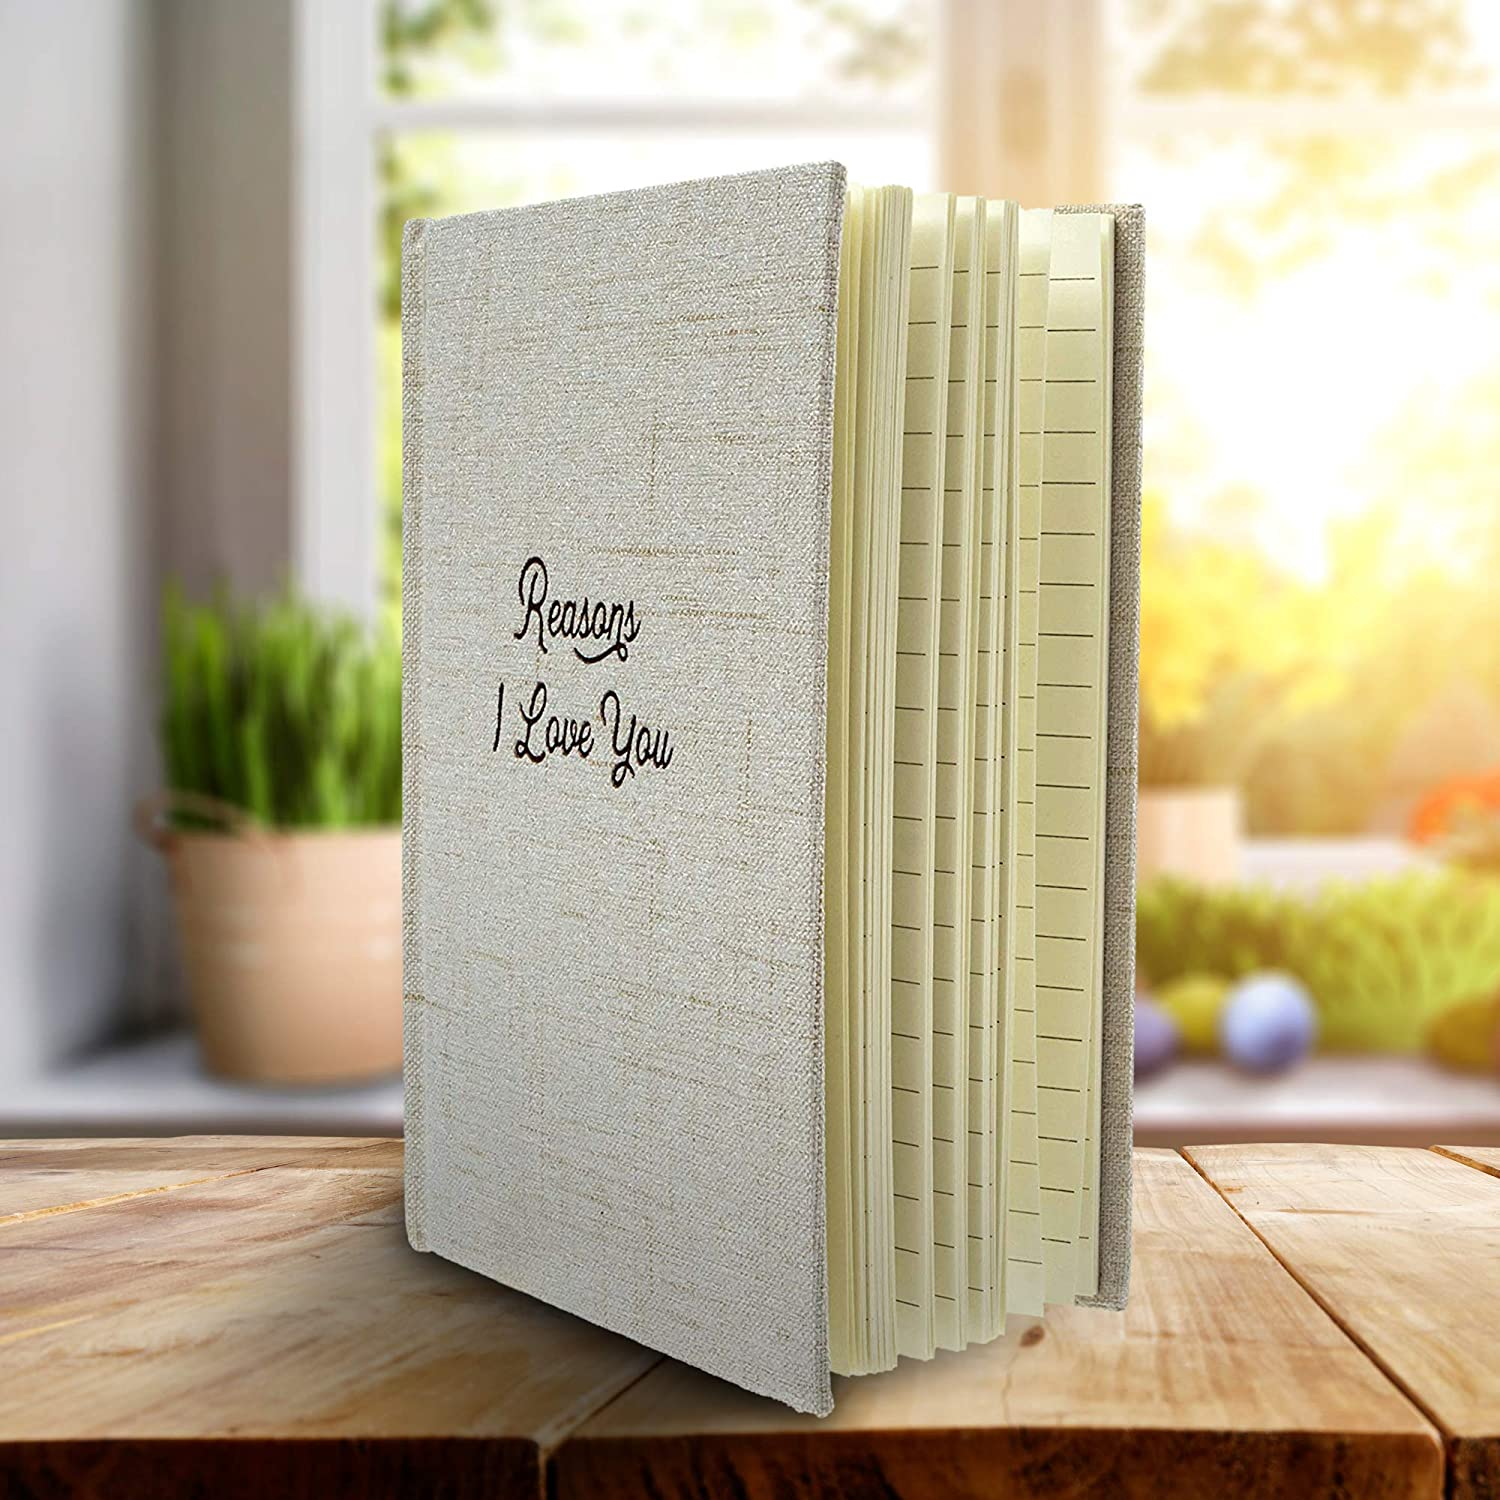 Why I Love You Hardcover